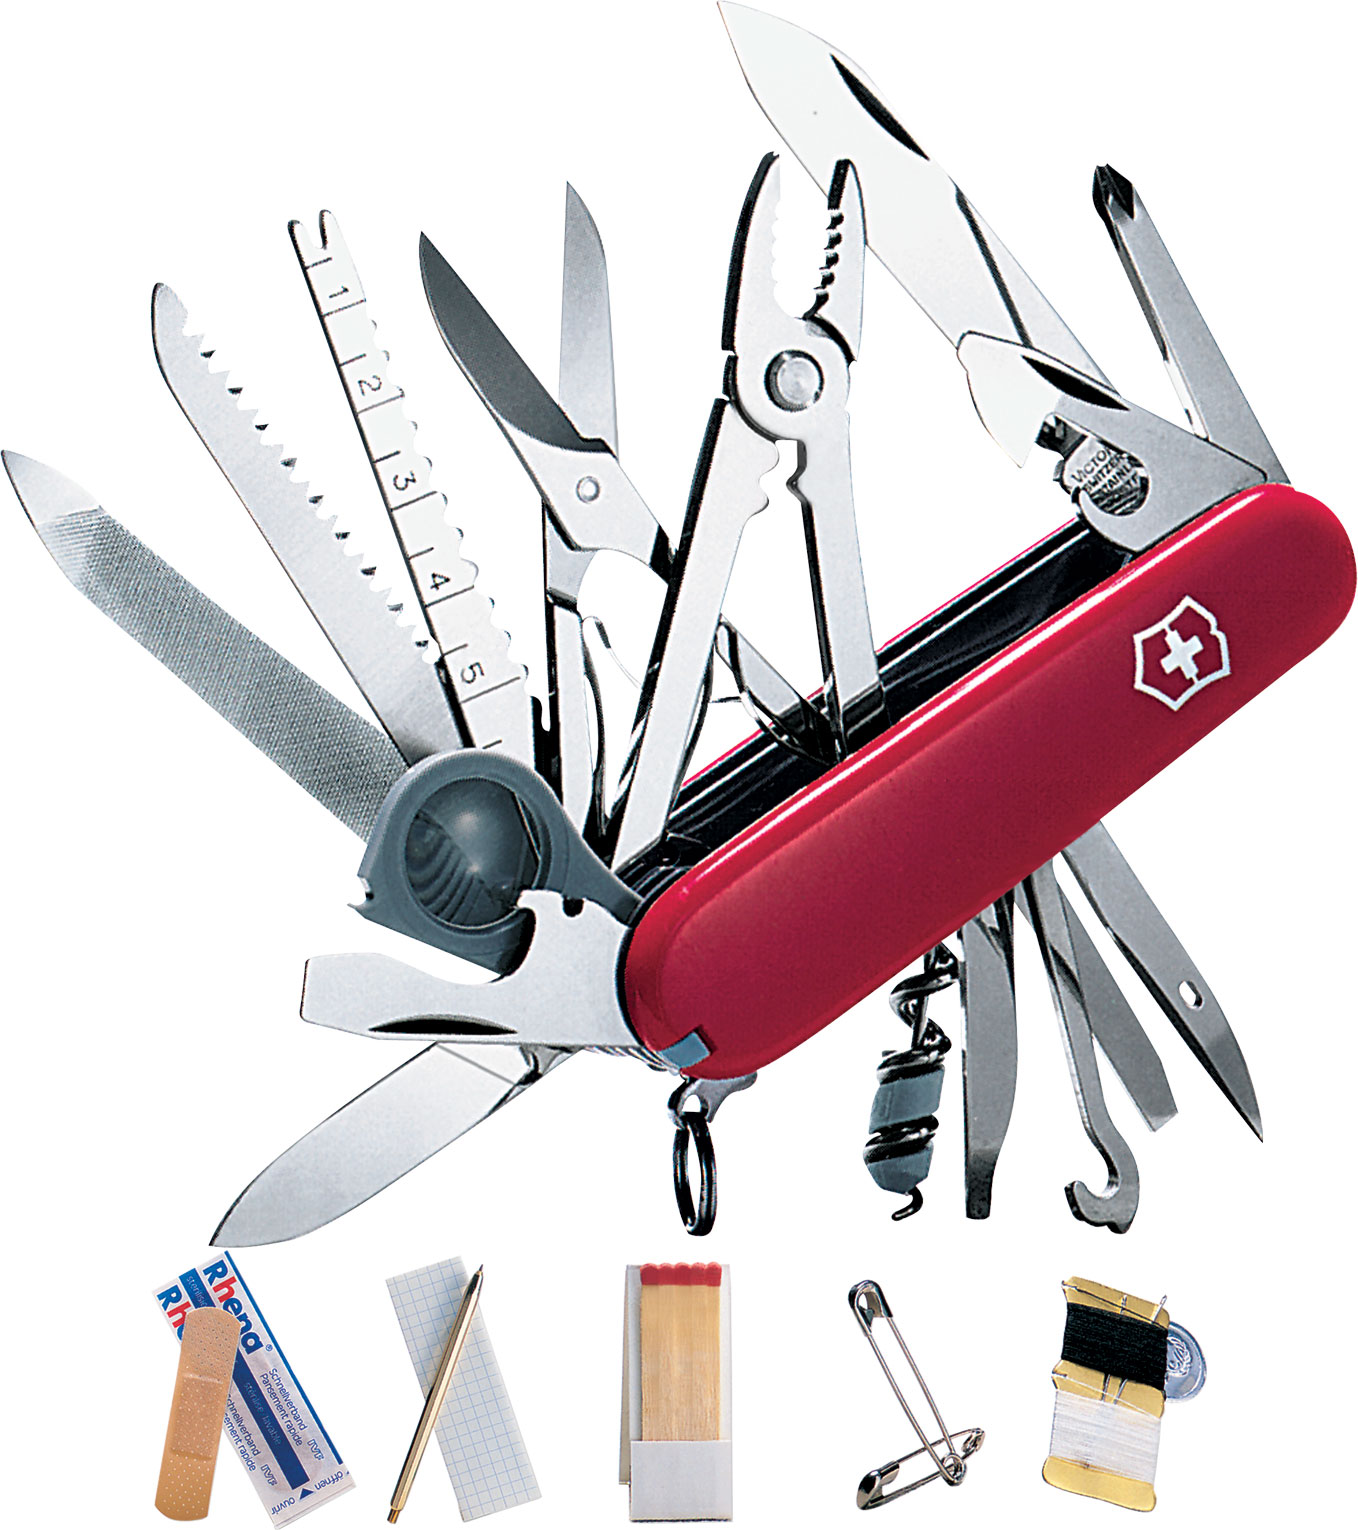 Victorinox Swiss Army SwissChamp SOS Multi-Tool, Red, 3.31 inch Closed